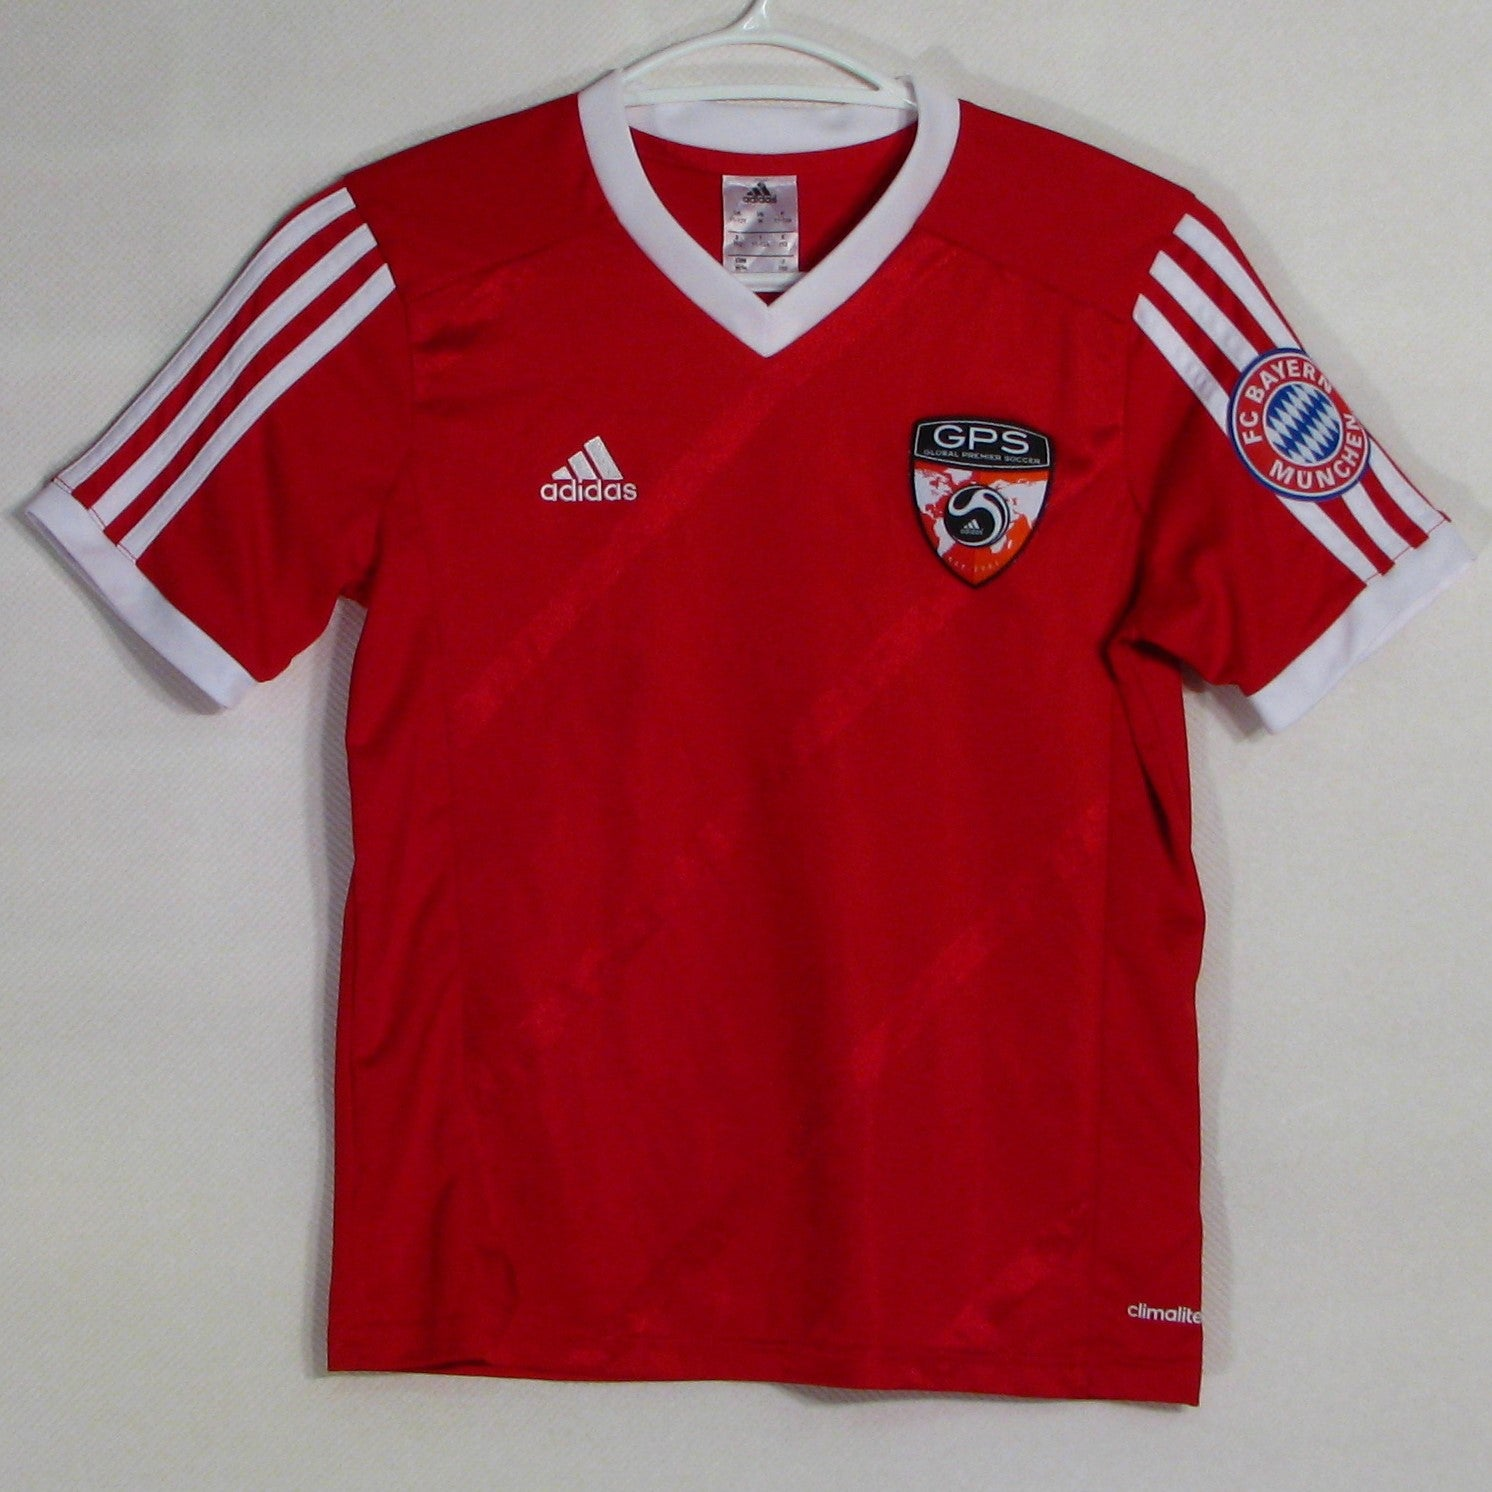 Global Premier Soccer Jersey Youth